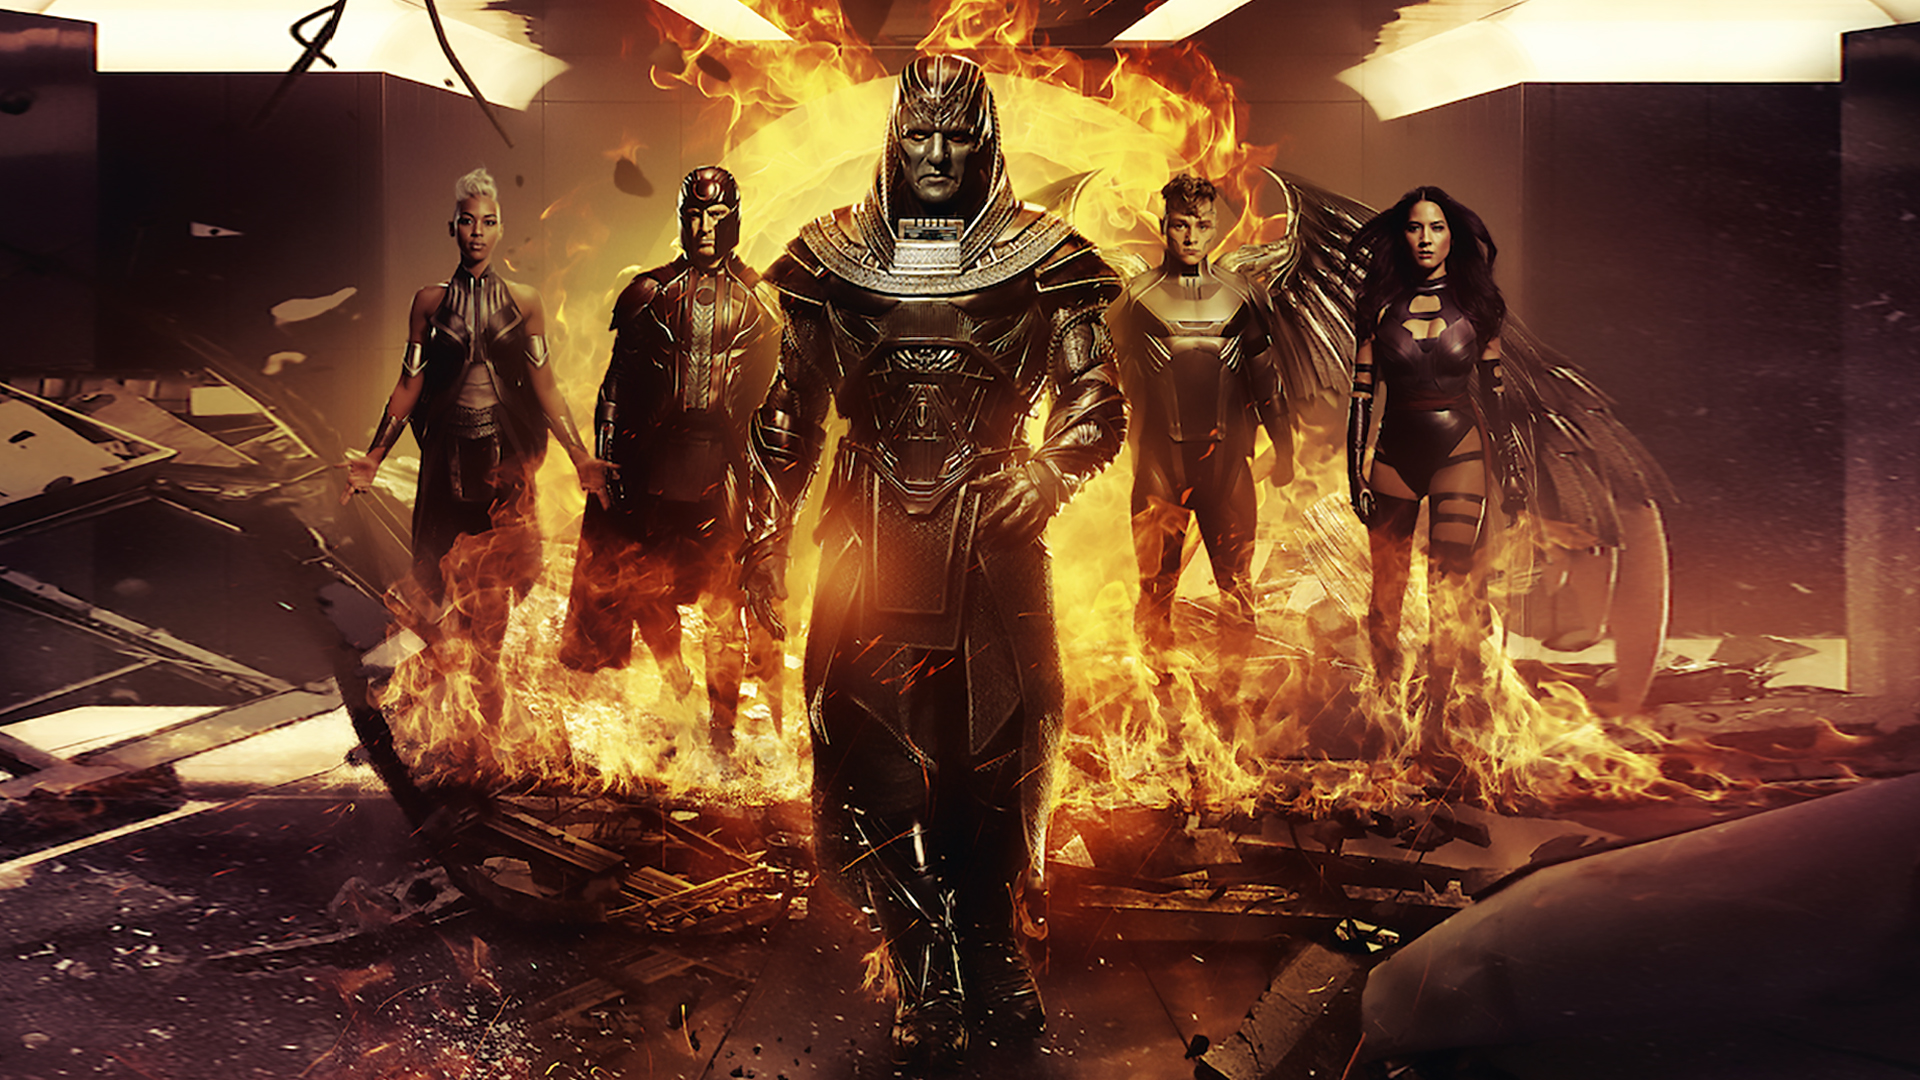 Men Apocalypse Wallpaper 1920x1080 by sachso74 1920x1080